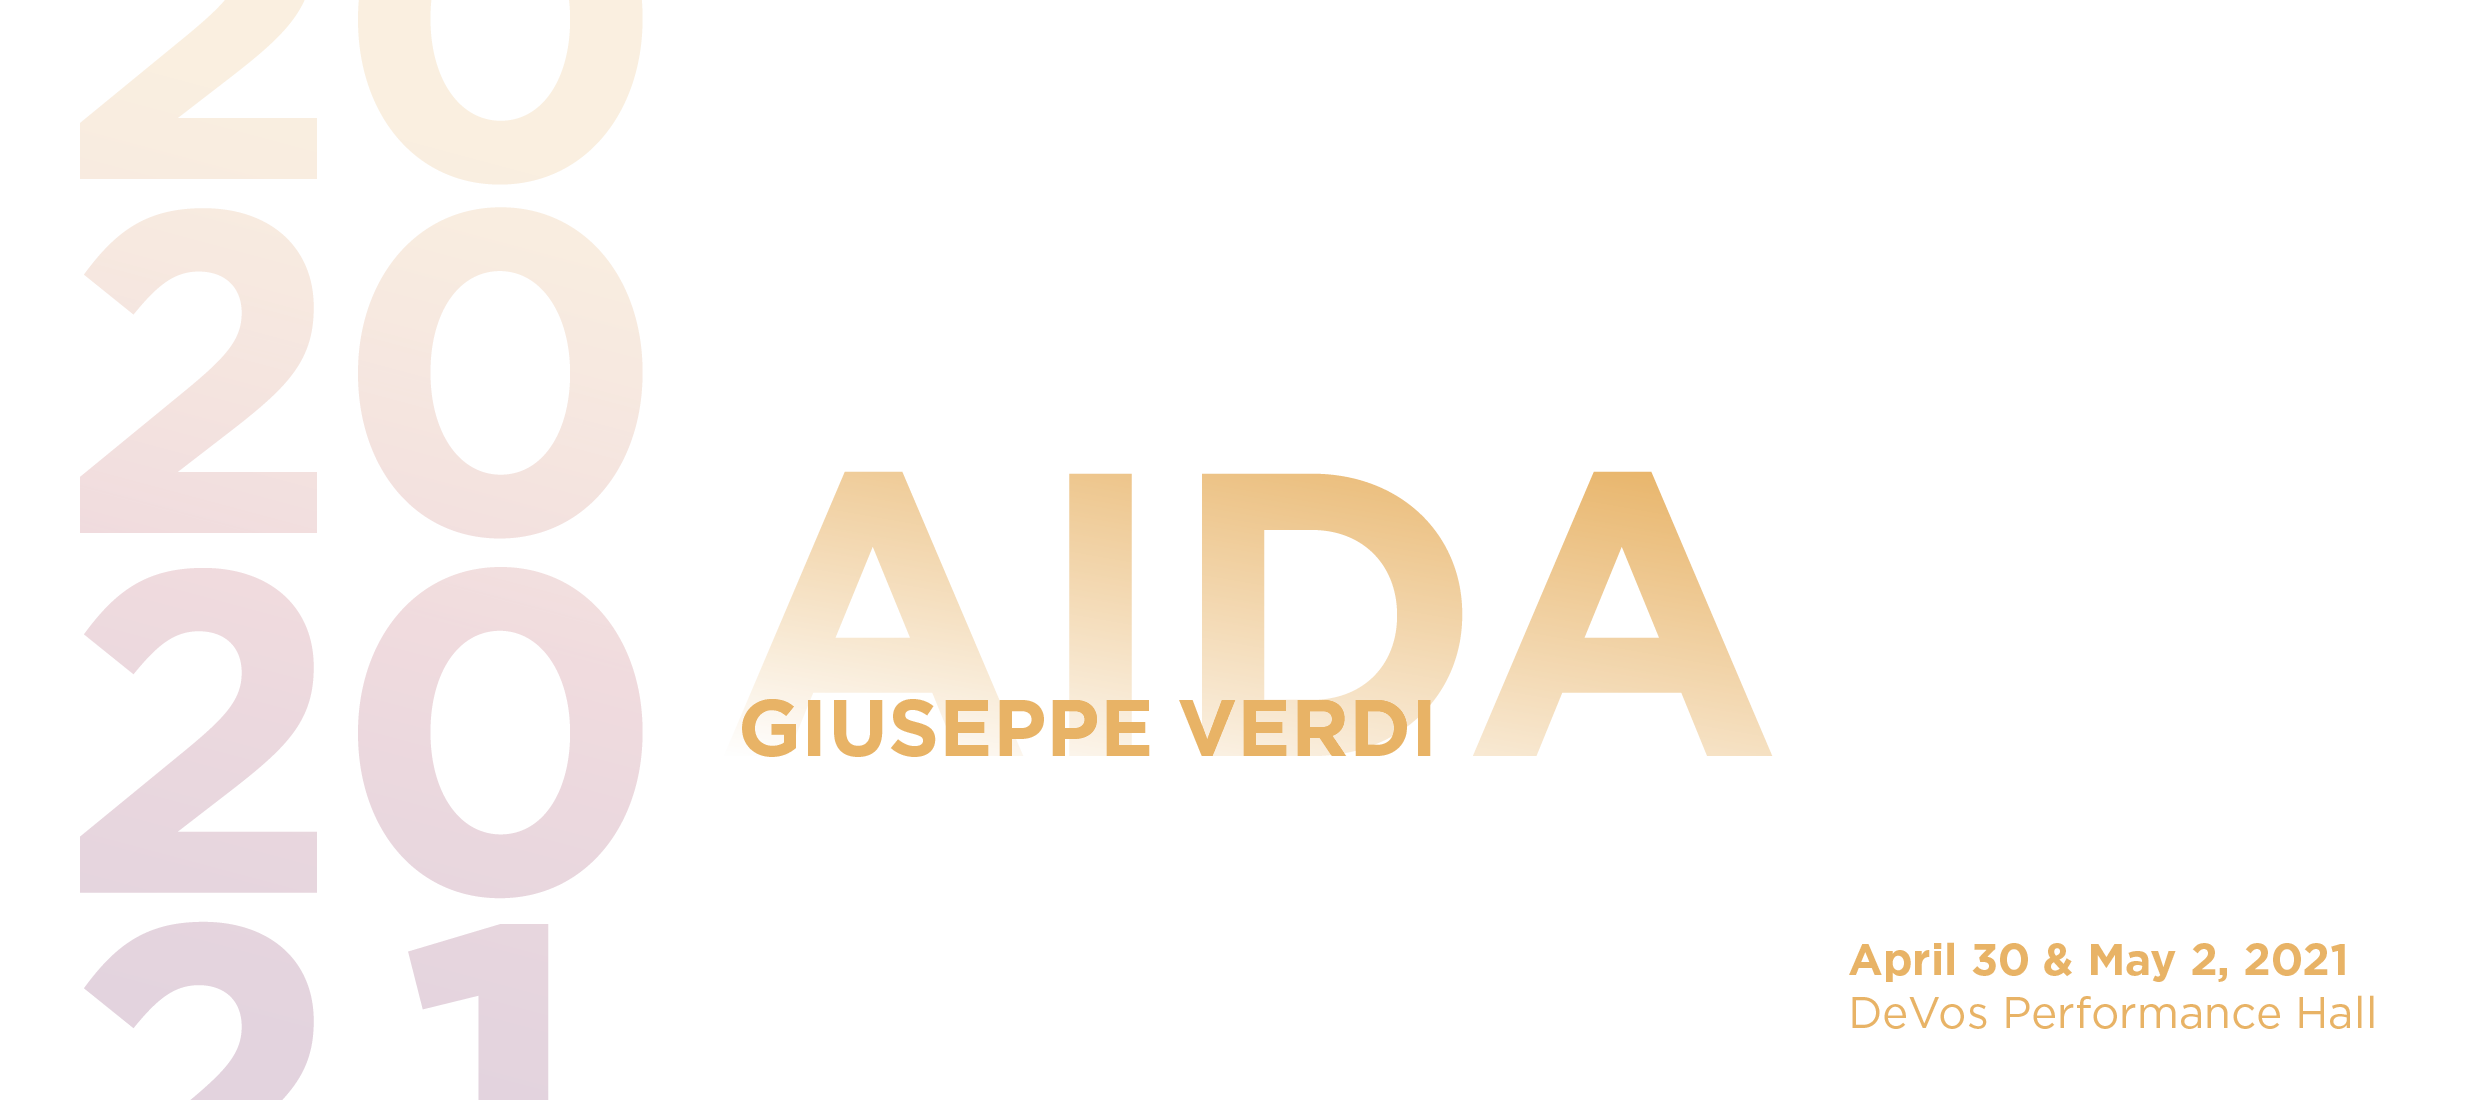 Aida by Giuseppe Verdi - April 30 & May 2, 2021; DeVos Performance Hall